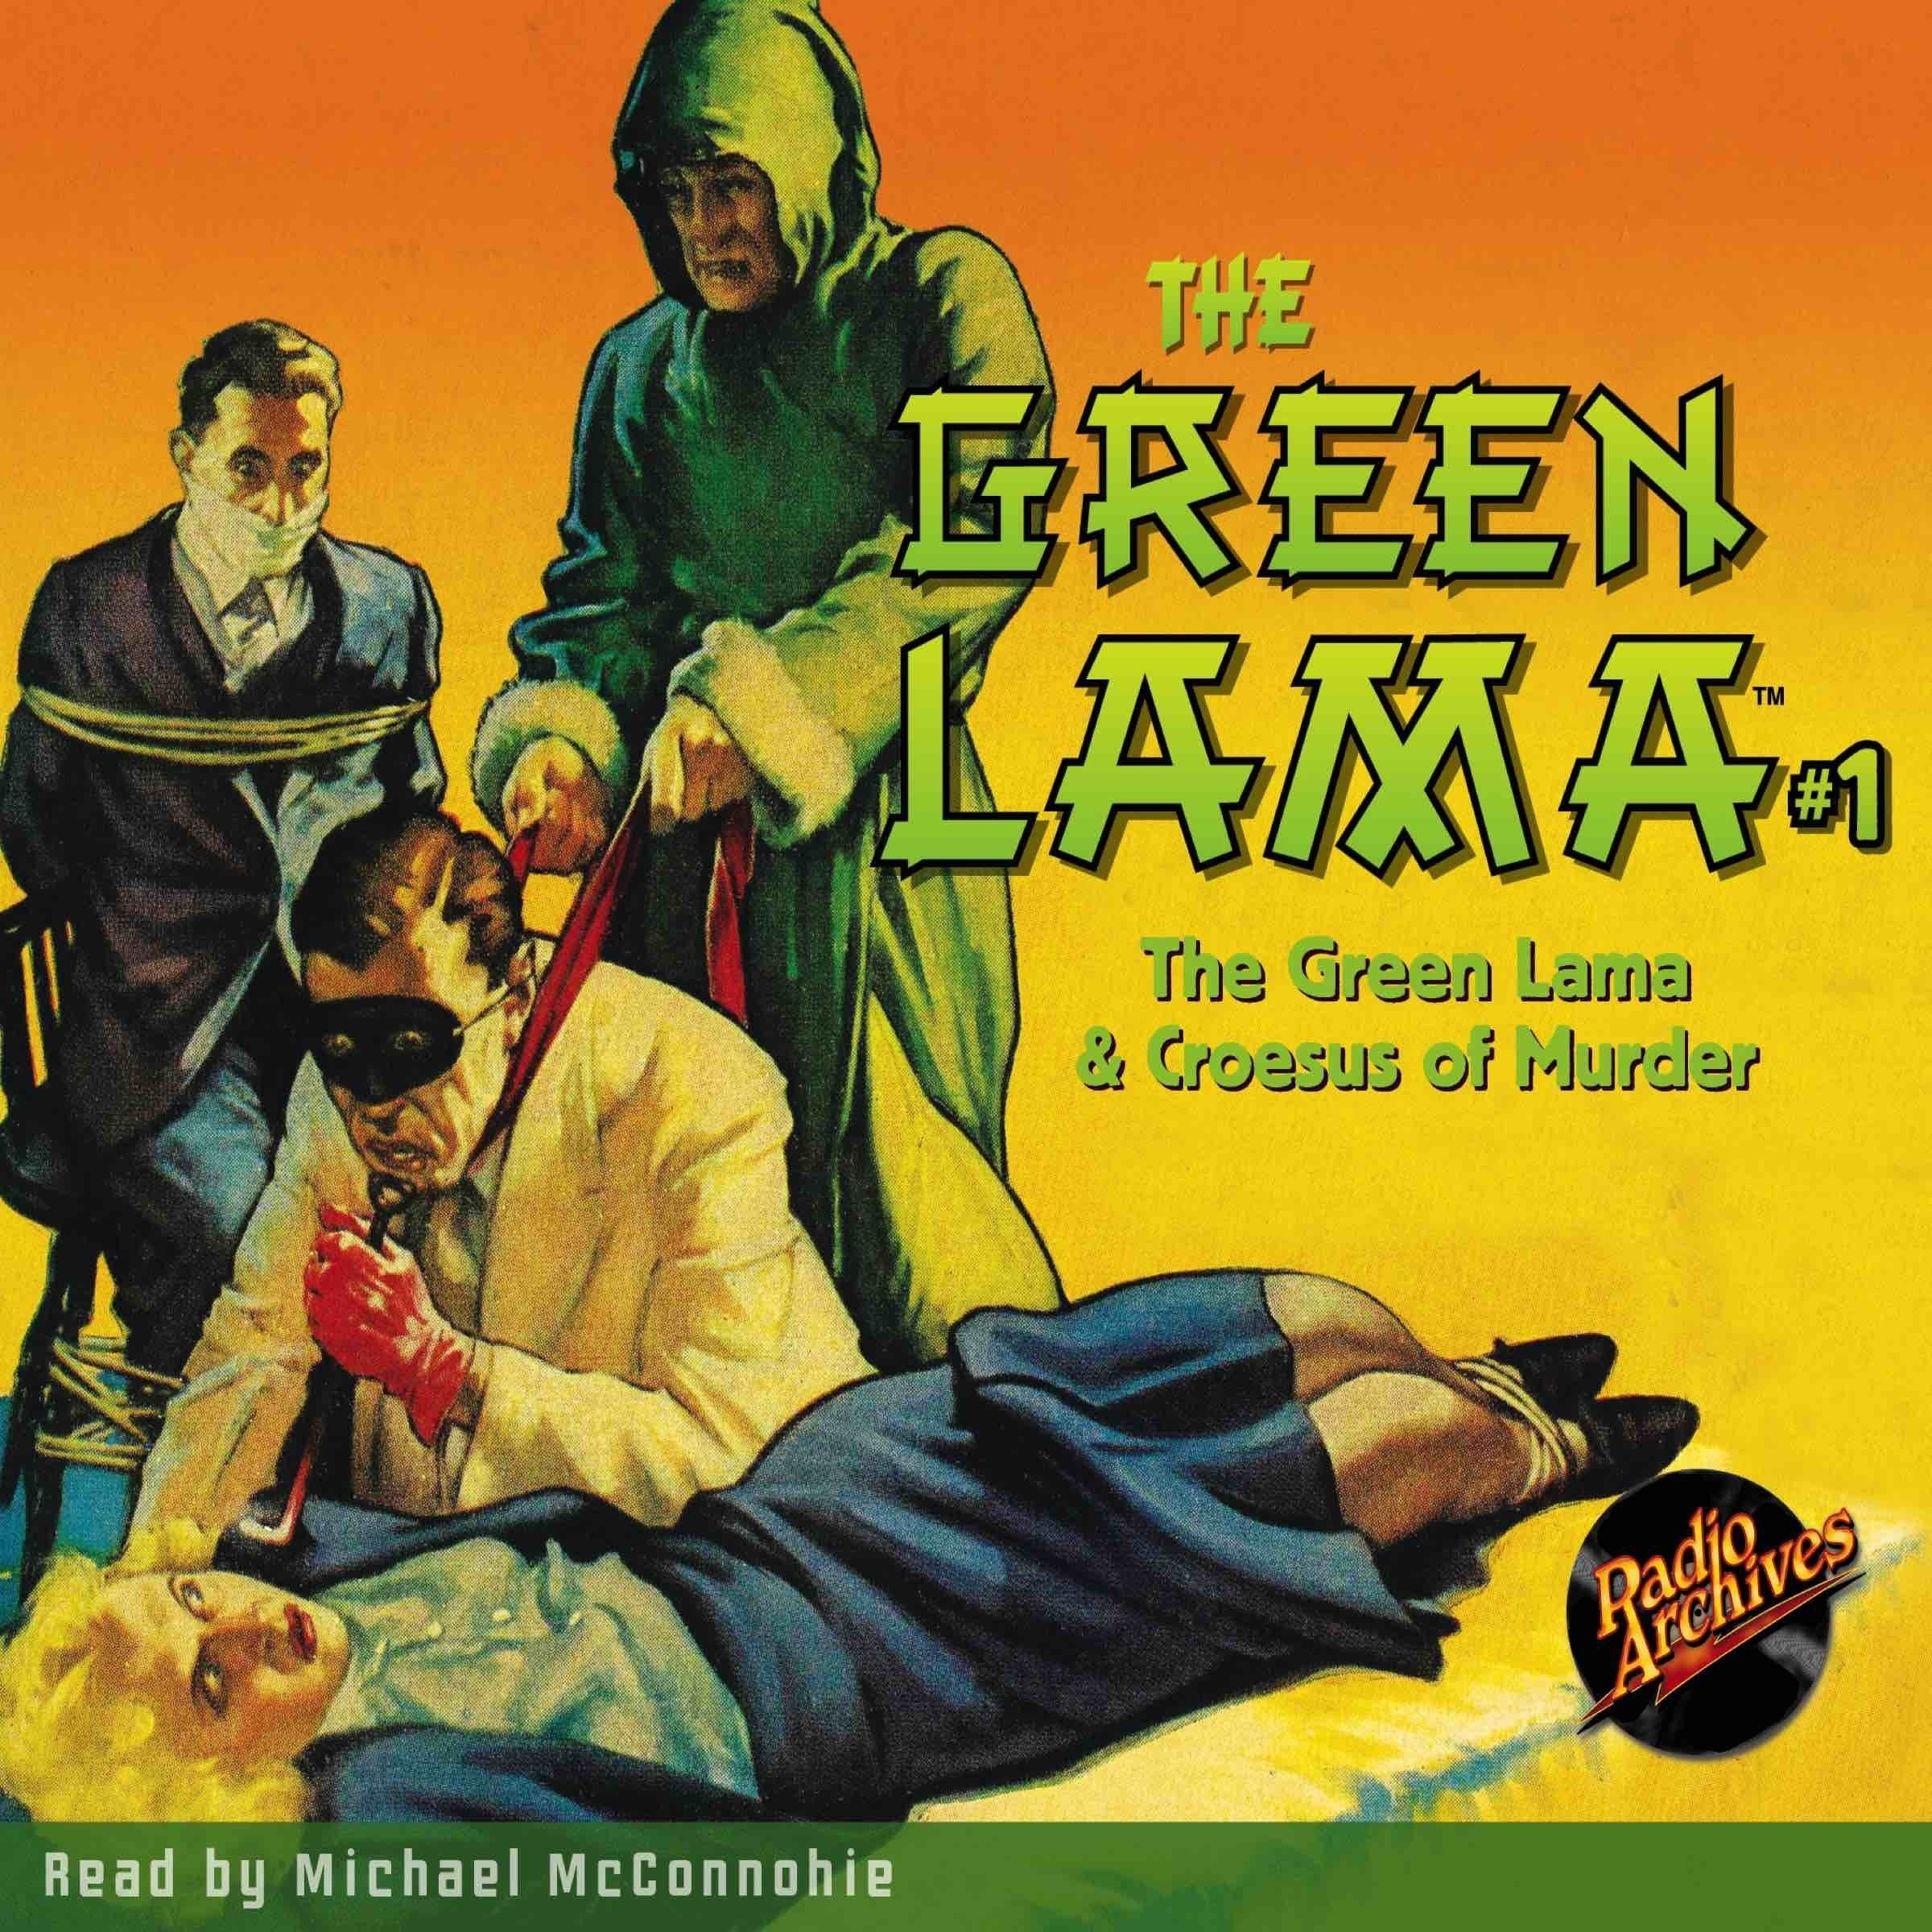 Printable The Green Lama #1: The Green Lama & Croesus of Murder Audiobook Cover Art